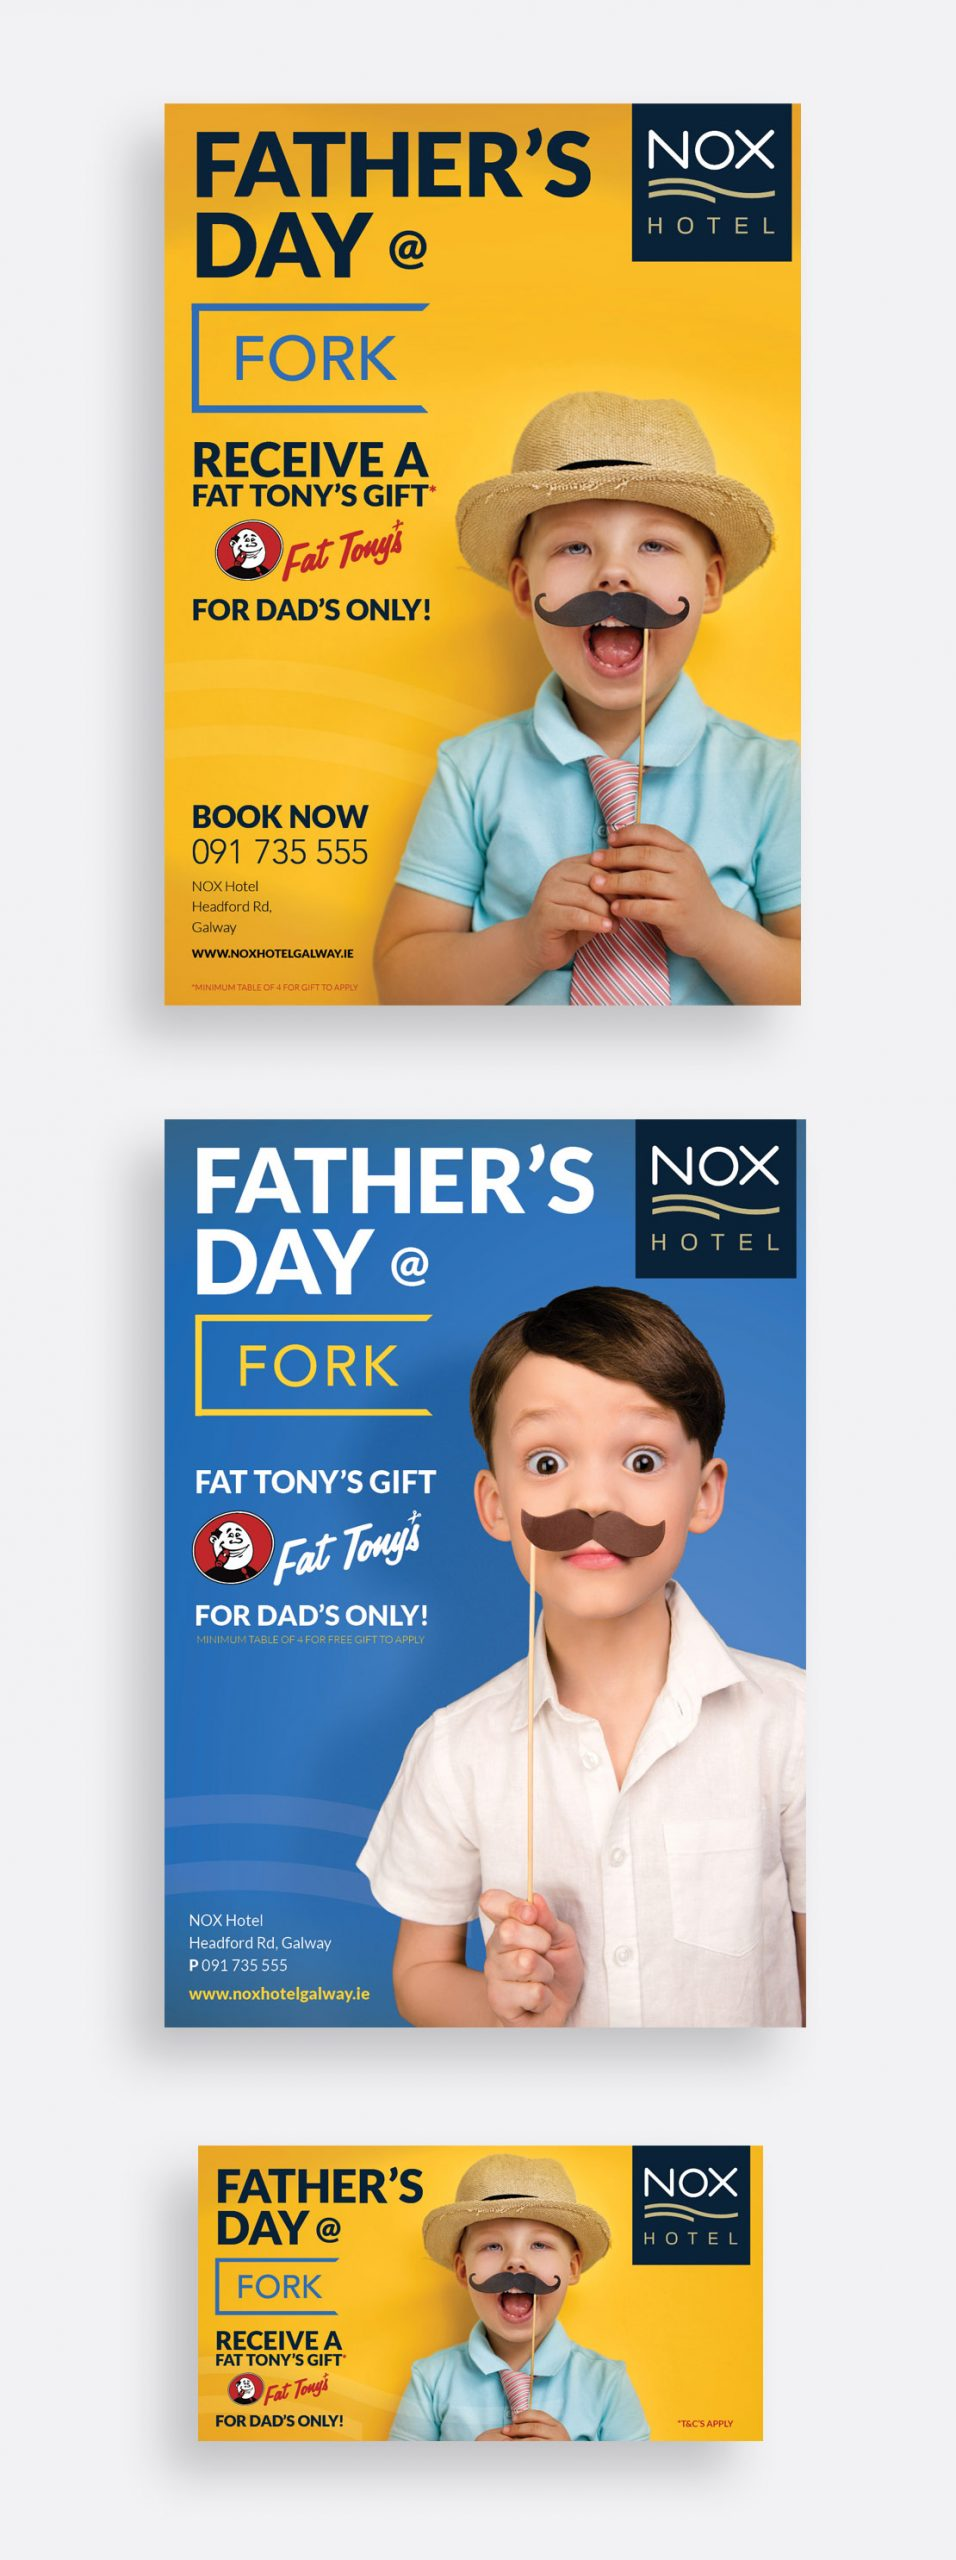 Nox Hotel Father's Day print and social media campaign